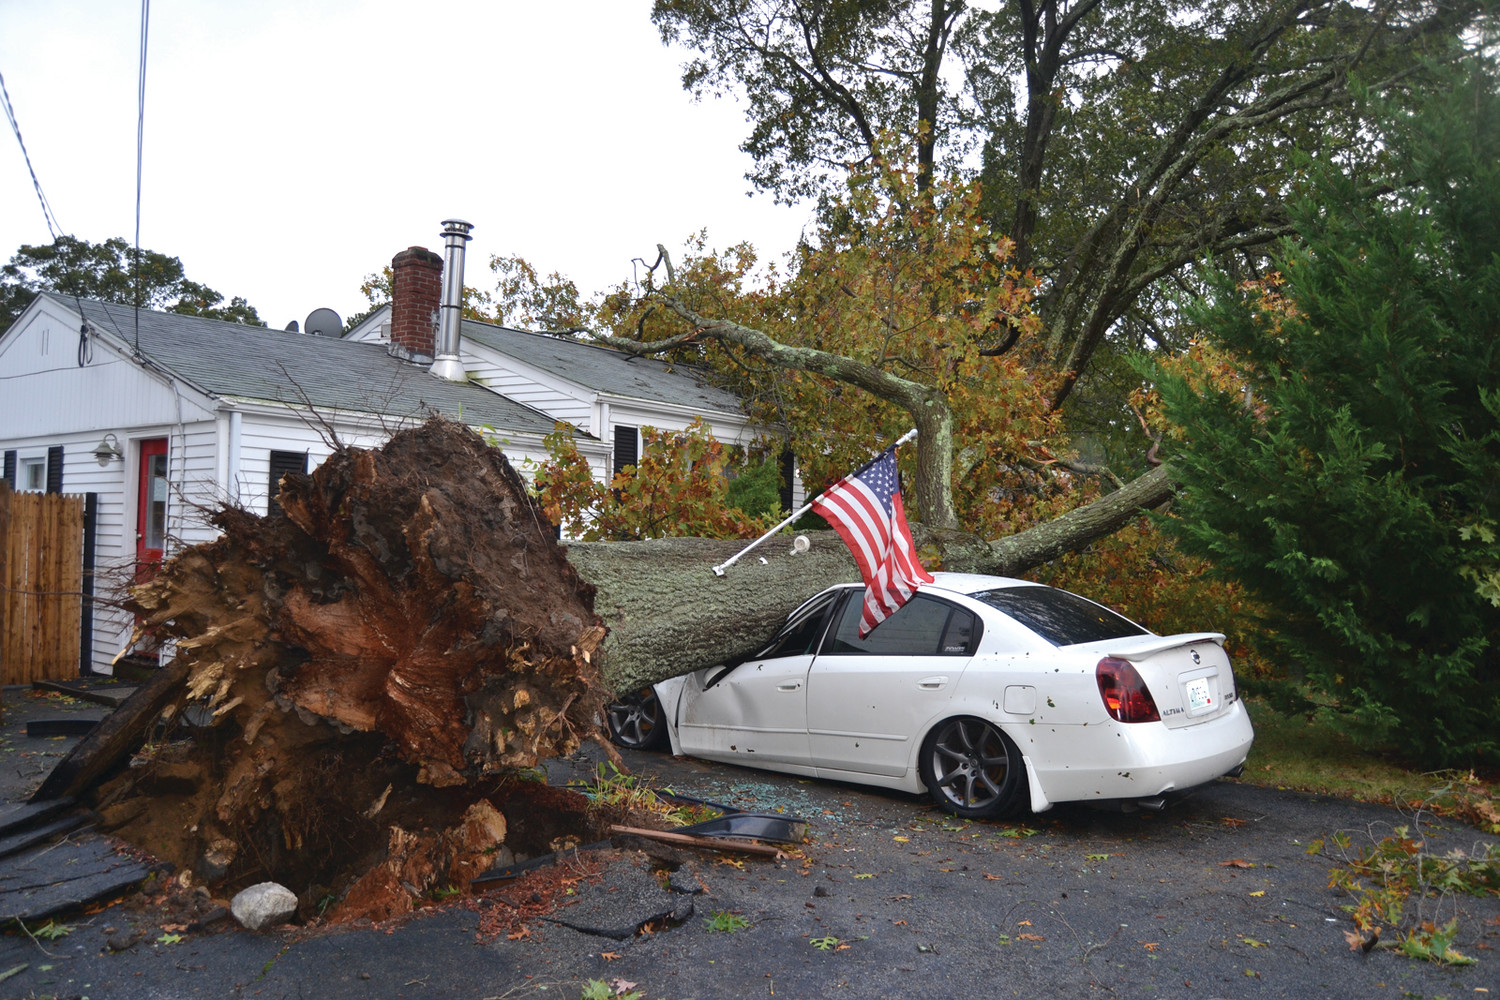 OUR FLAG WAS STILL THERE: This massive oak tree crushed a Nissan Altima and landed on a home at the corner of Asylum Road and Ingersoll Avenue. No one was injured at the residence. The flag which was affixed to the tree remained standing and waving in the heavy storm winds.